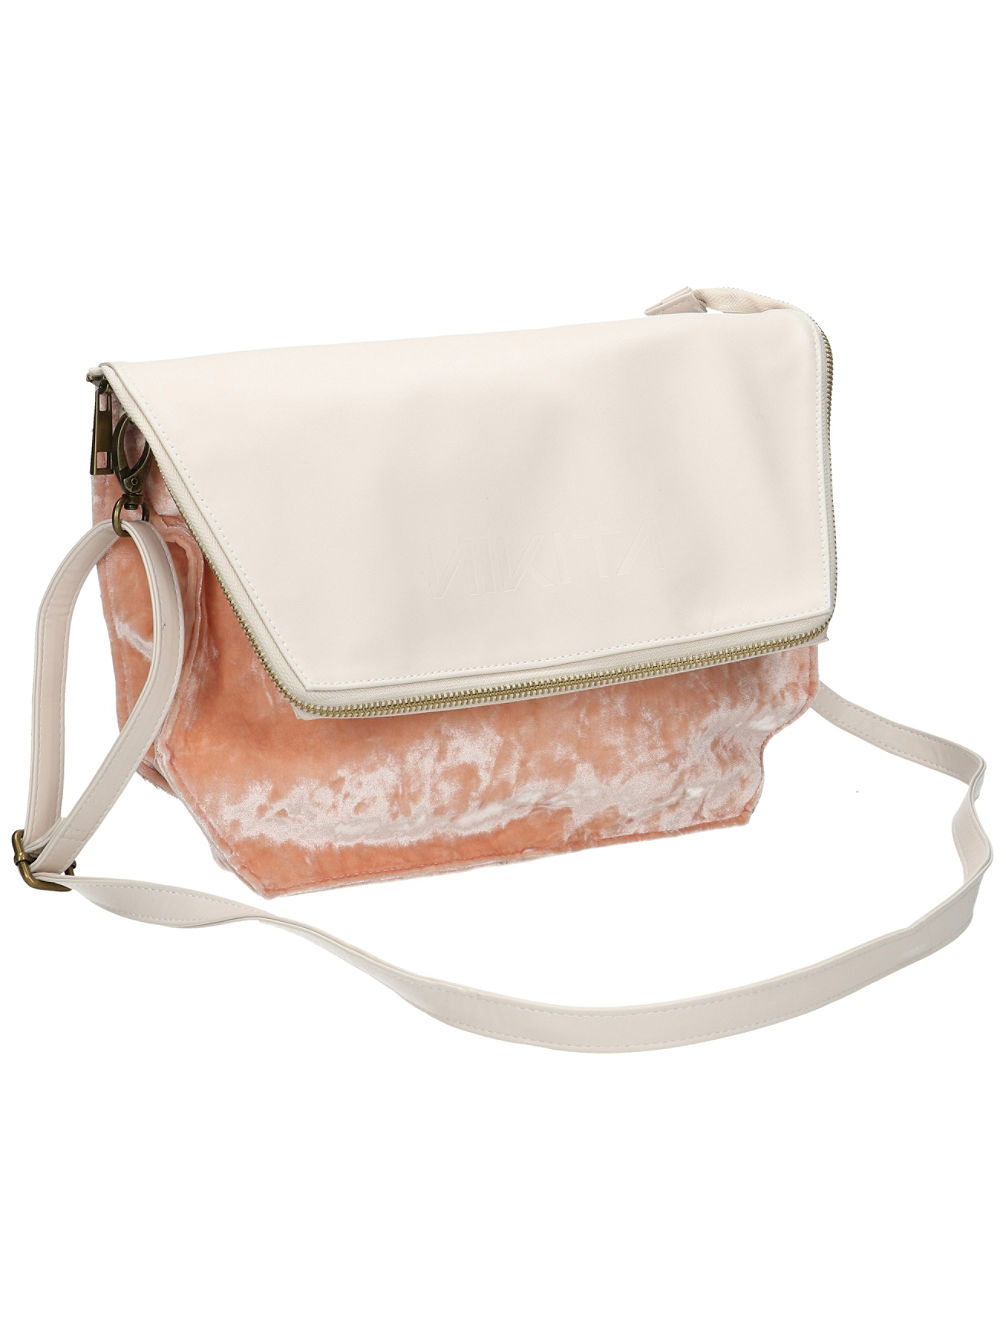 Mountain Ash Clutch Handtasche